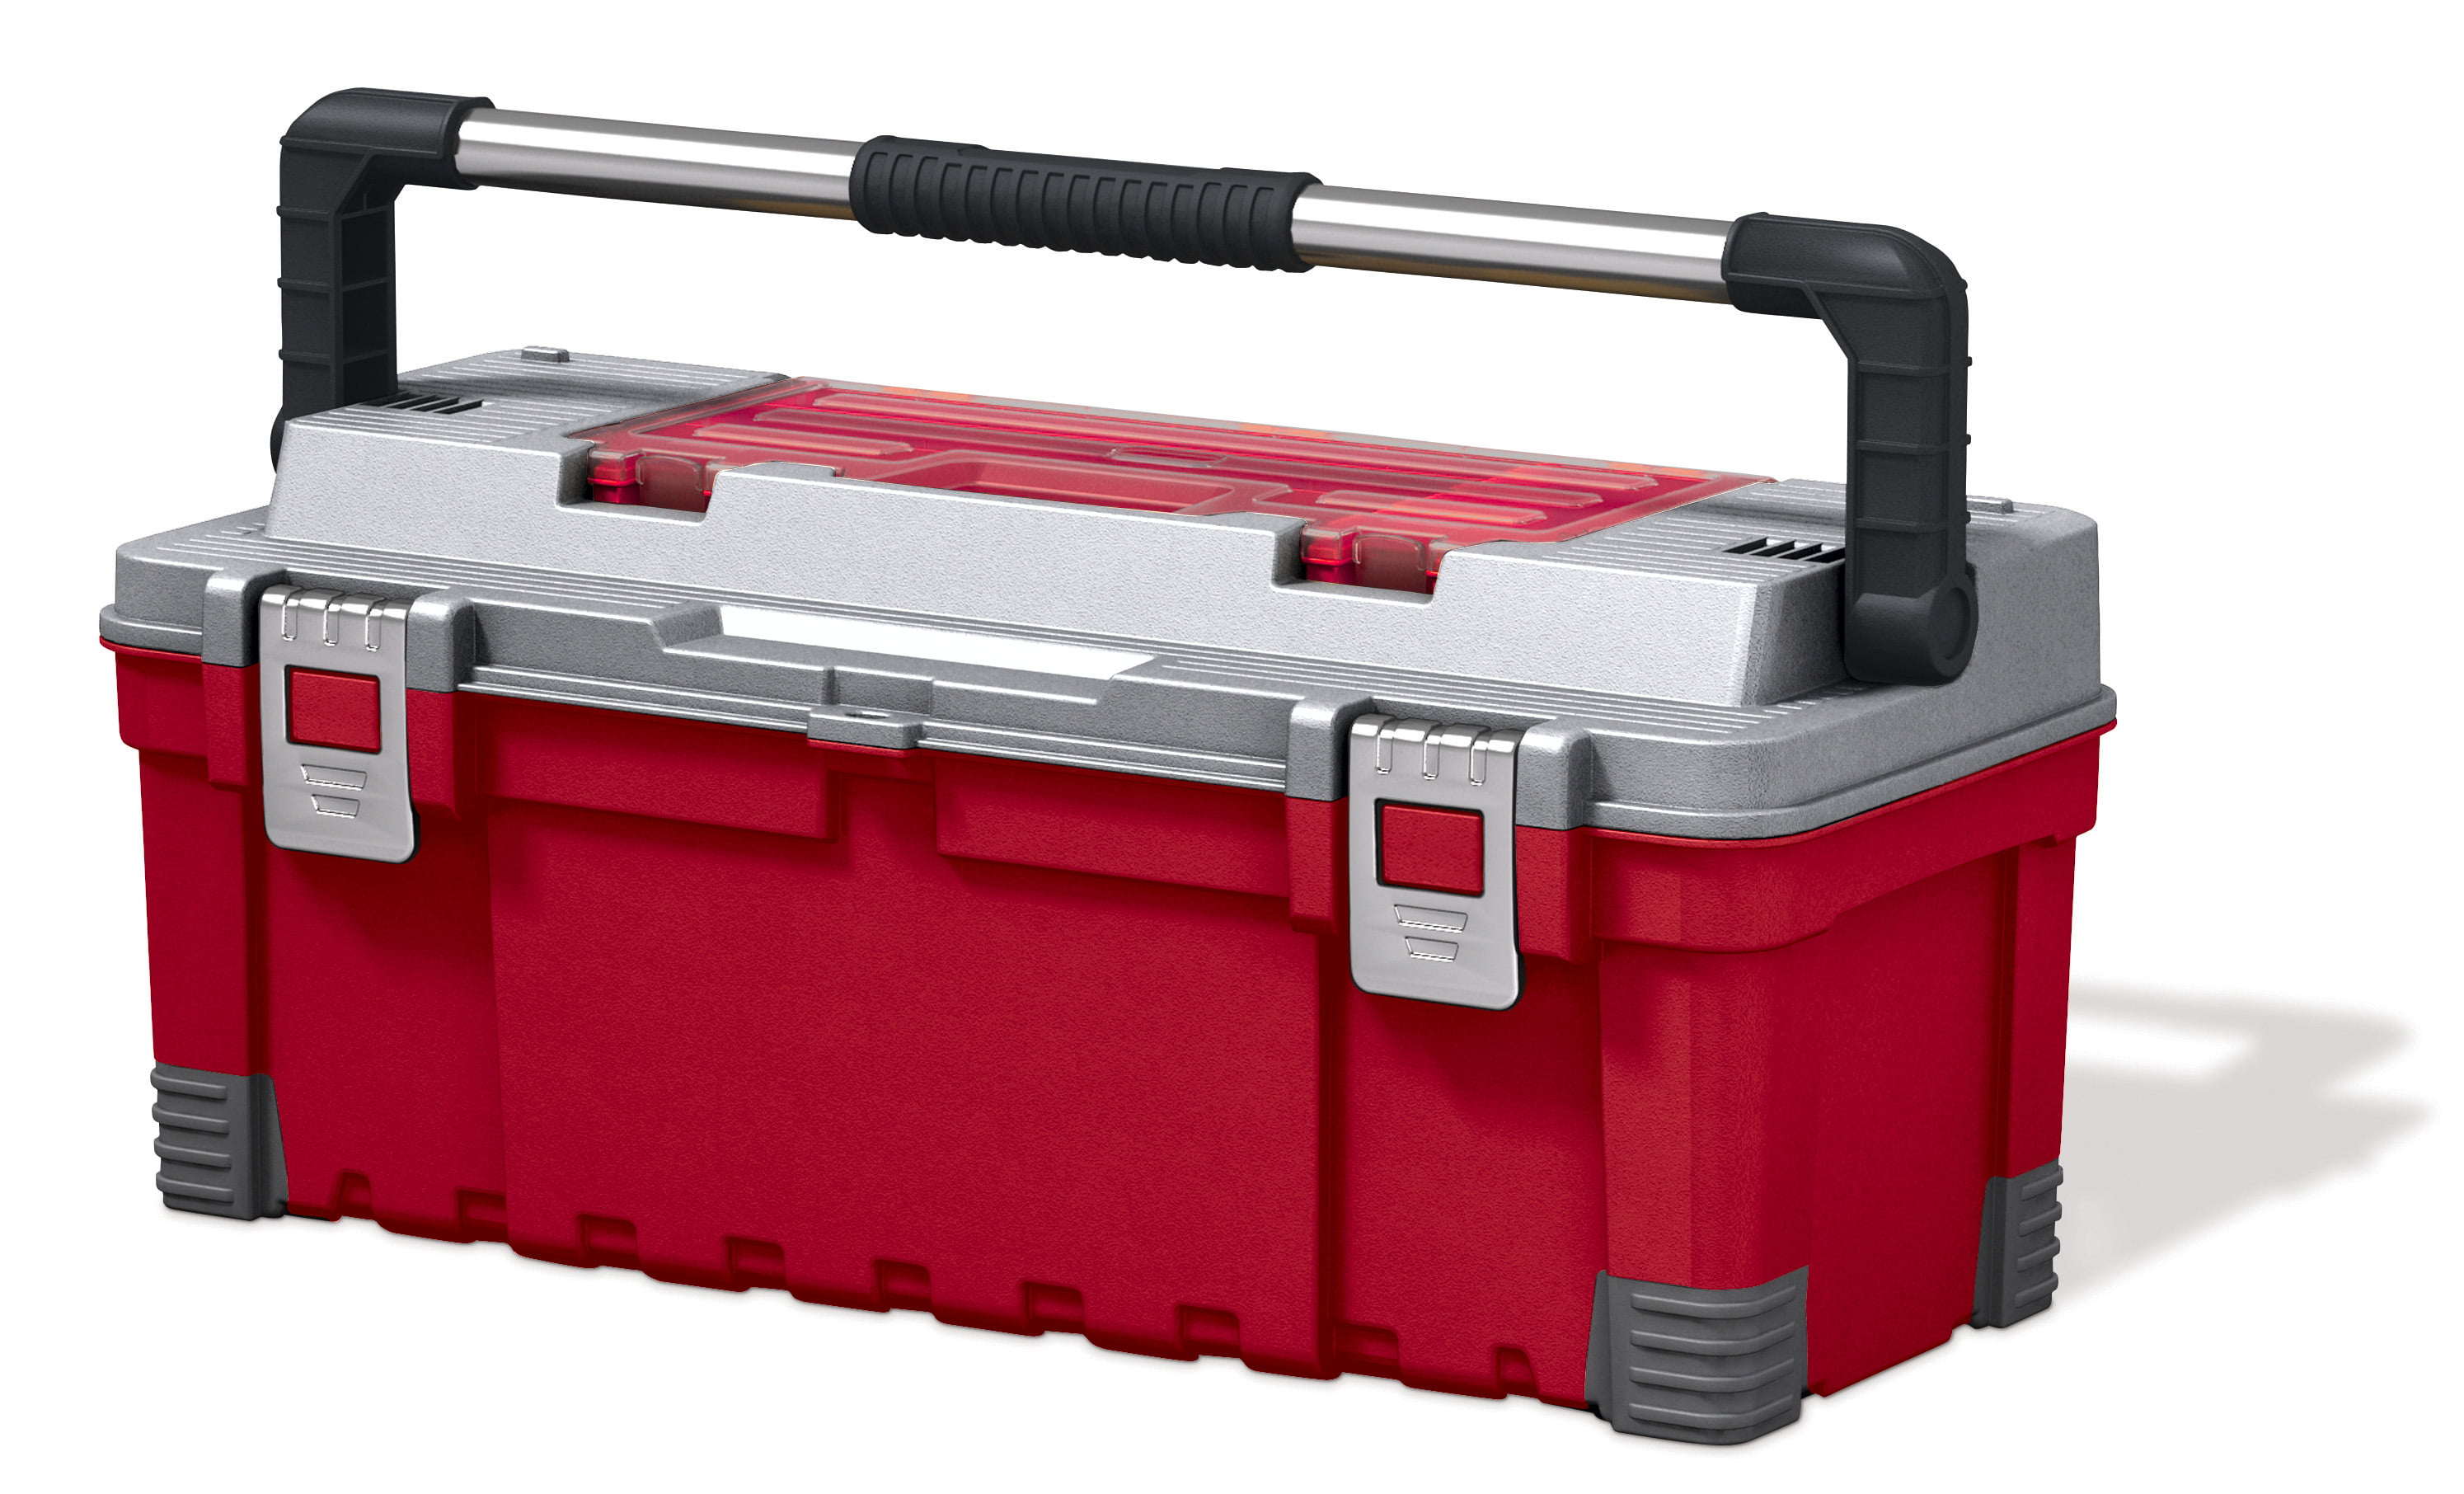 Keter 26-inch Tool Box, Resin Tool and Hardware Storage, Red